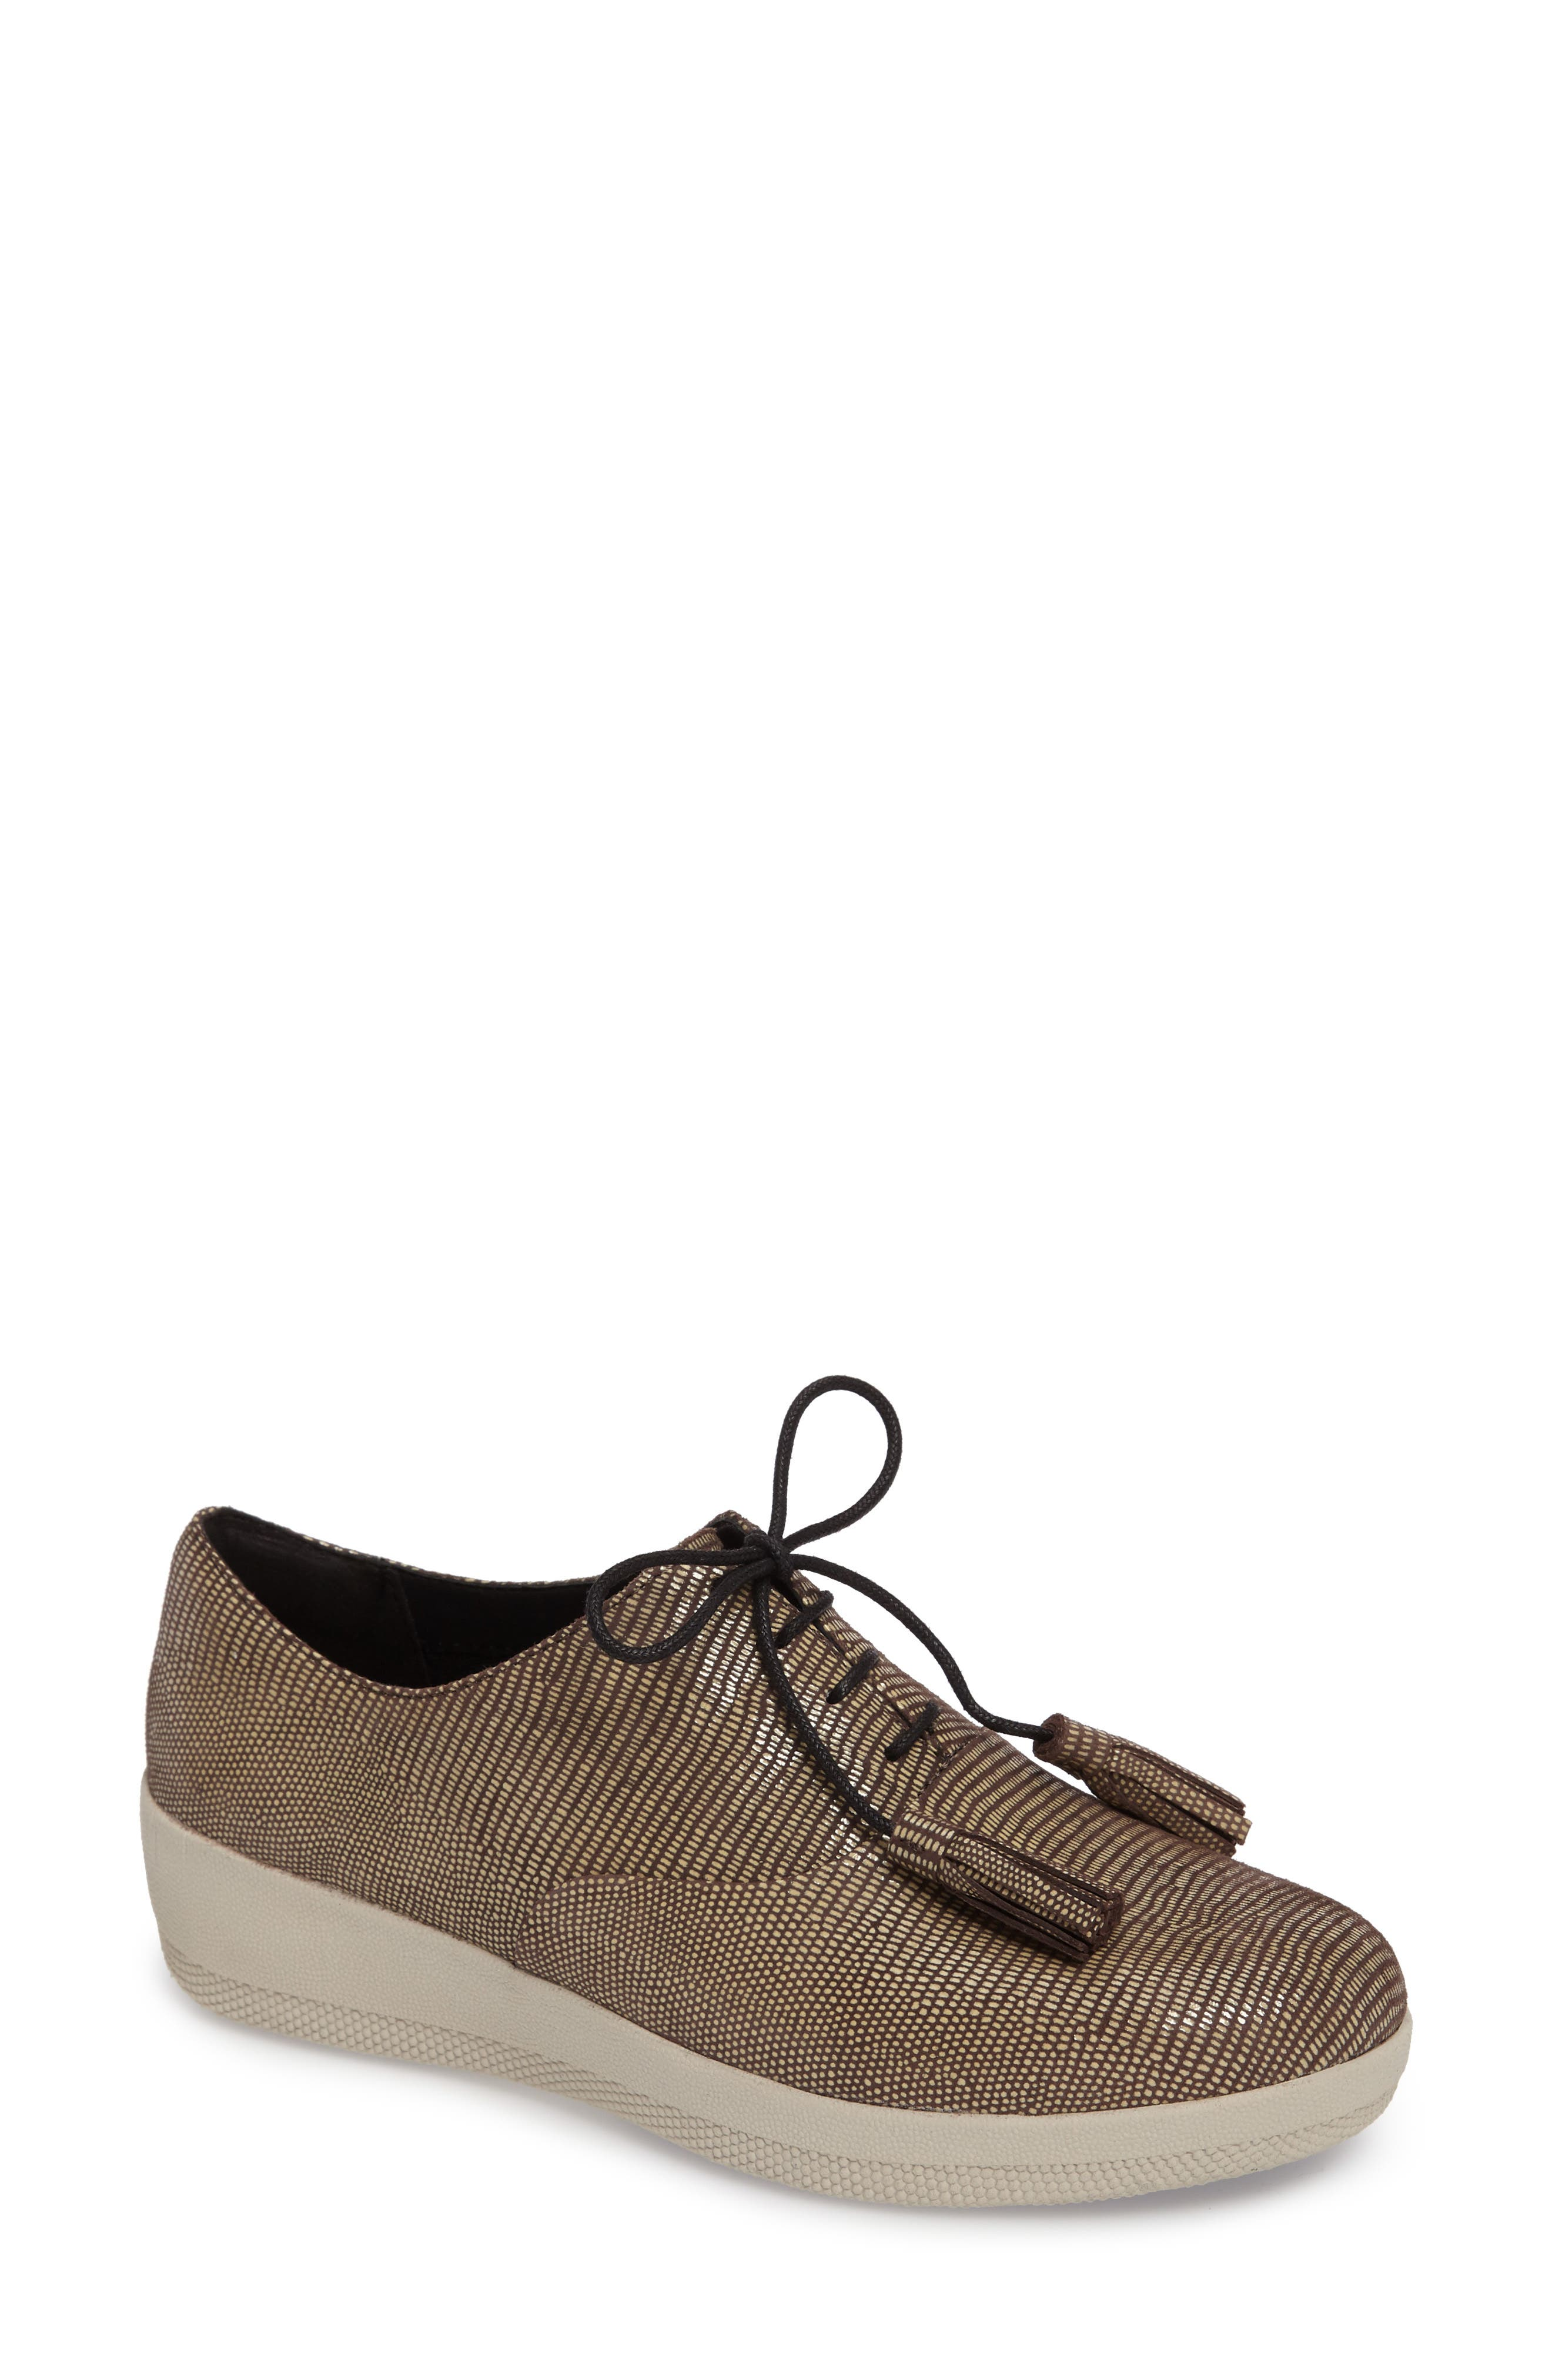 FitFlop™ 'Superoxford' Wedge (Women)